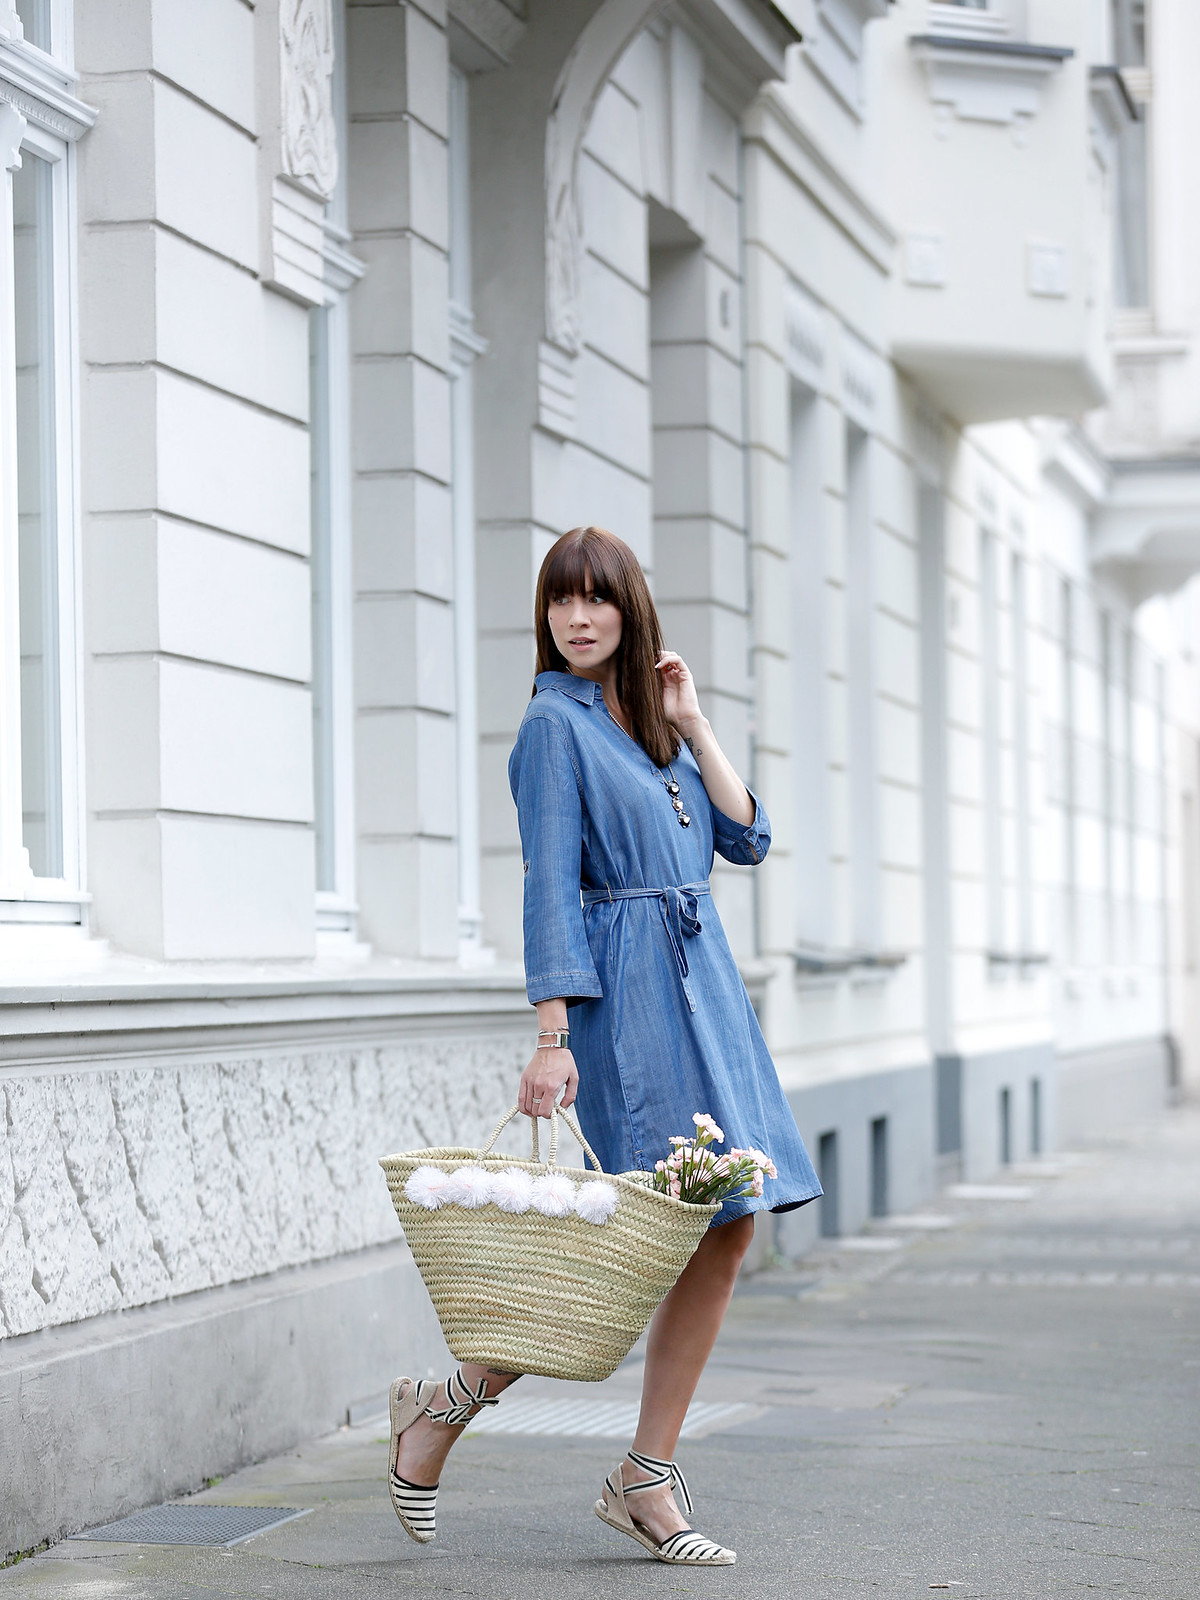 outfit triangle s.oliver blue denim dress espradrilles jane birkin beach bag flowers summer paris parisienne fashionblogger germany berlin brunette bangs chic cats & dogs fashionblog ricarda schernus modeblogger 6